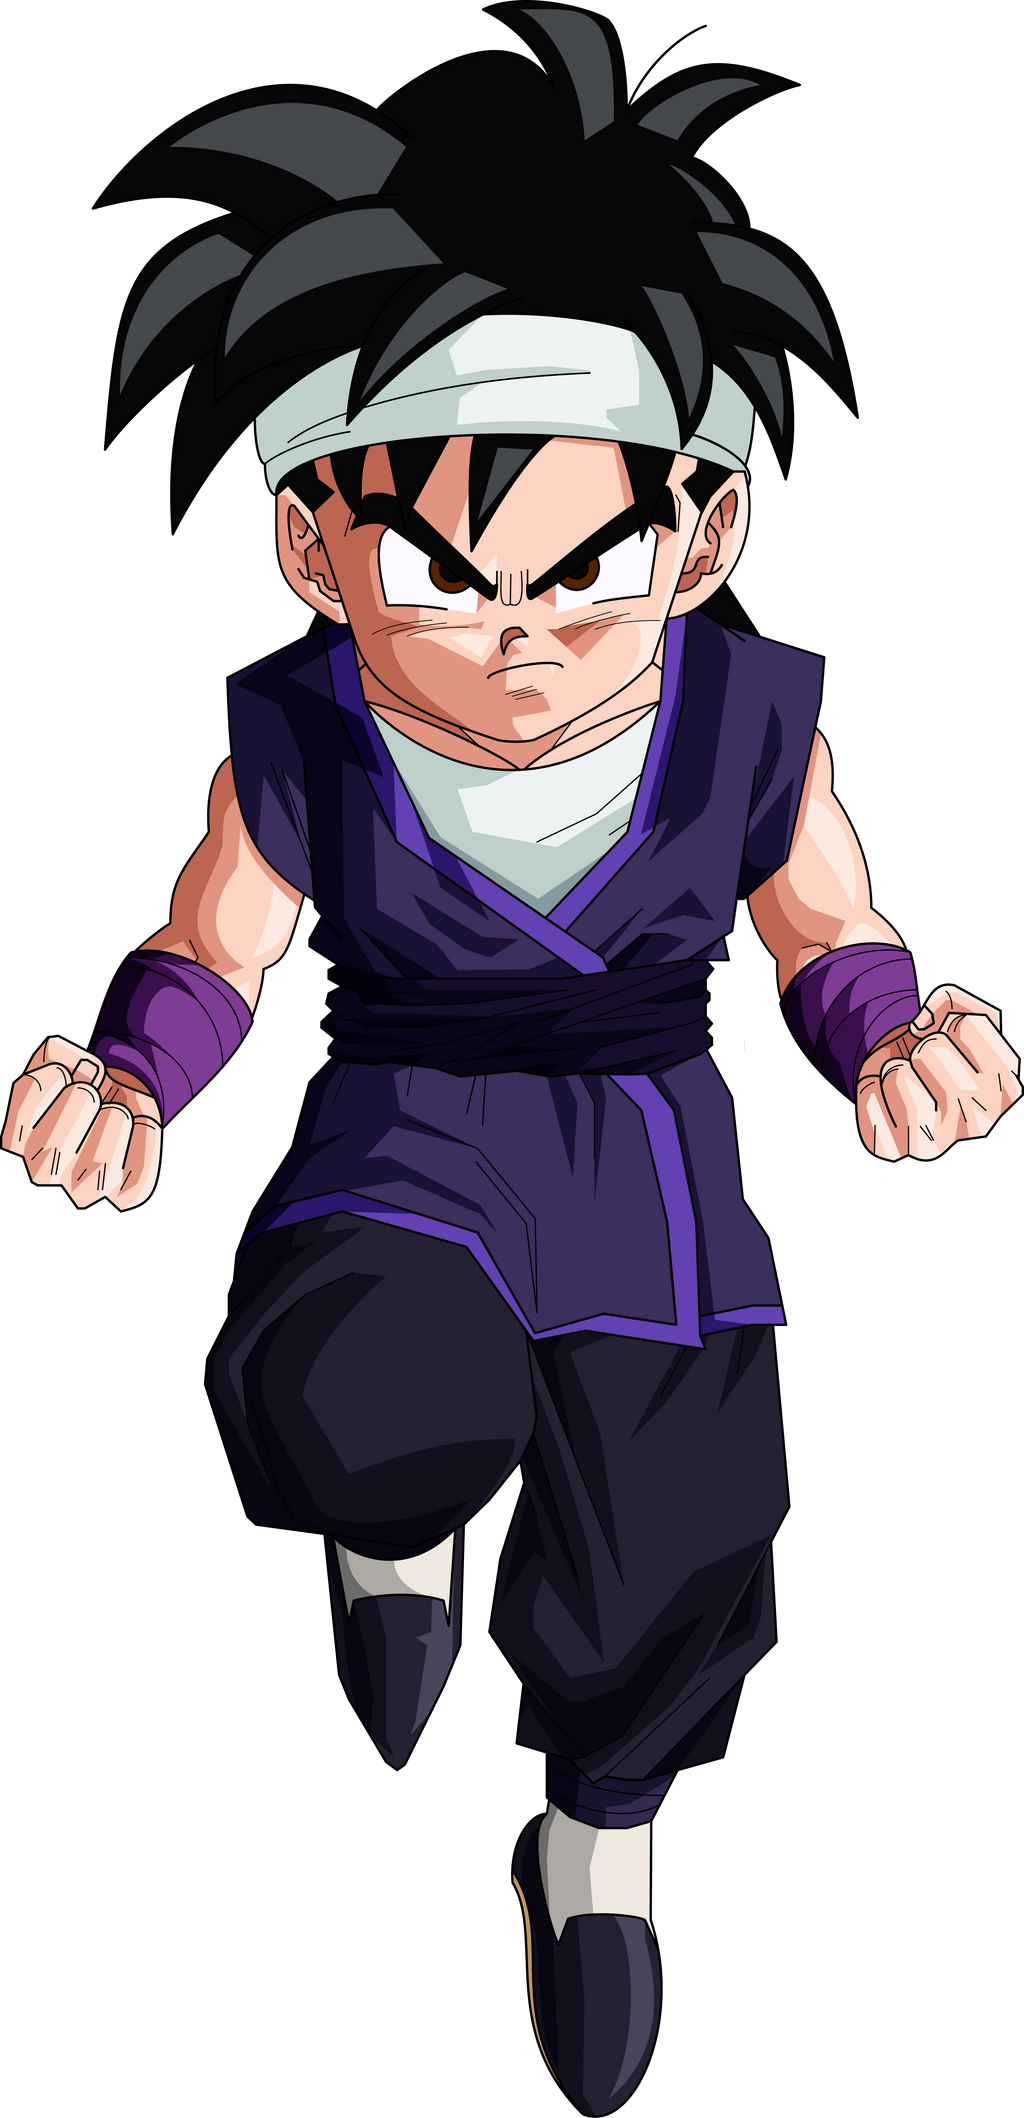 Gohan favourites by charliemanito on DeviantArt